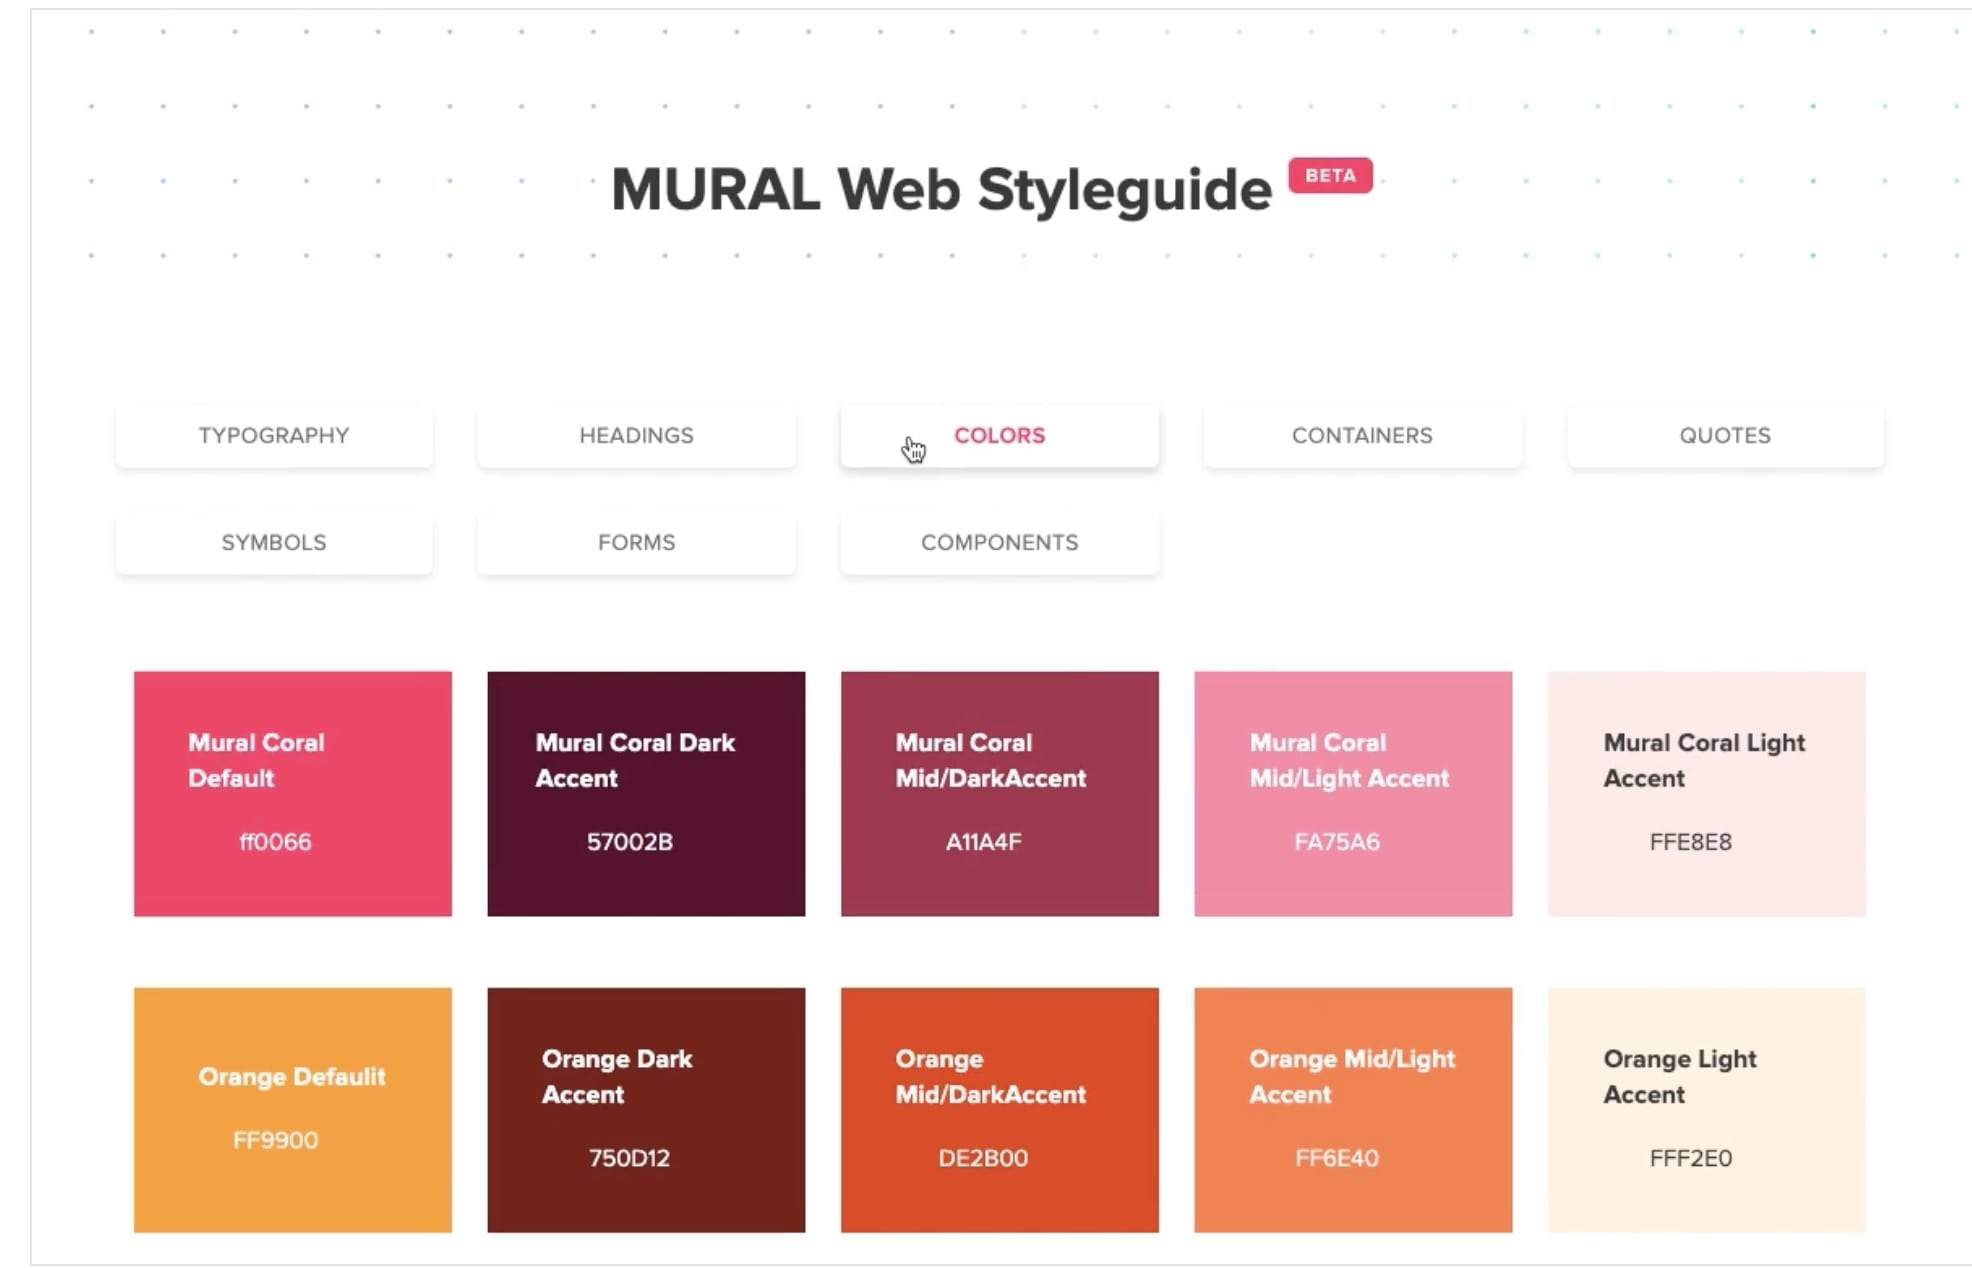 Screenshot of MURAL style guide showing brand colors.